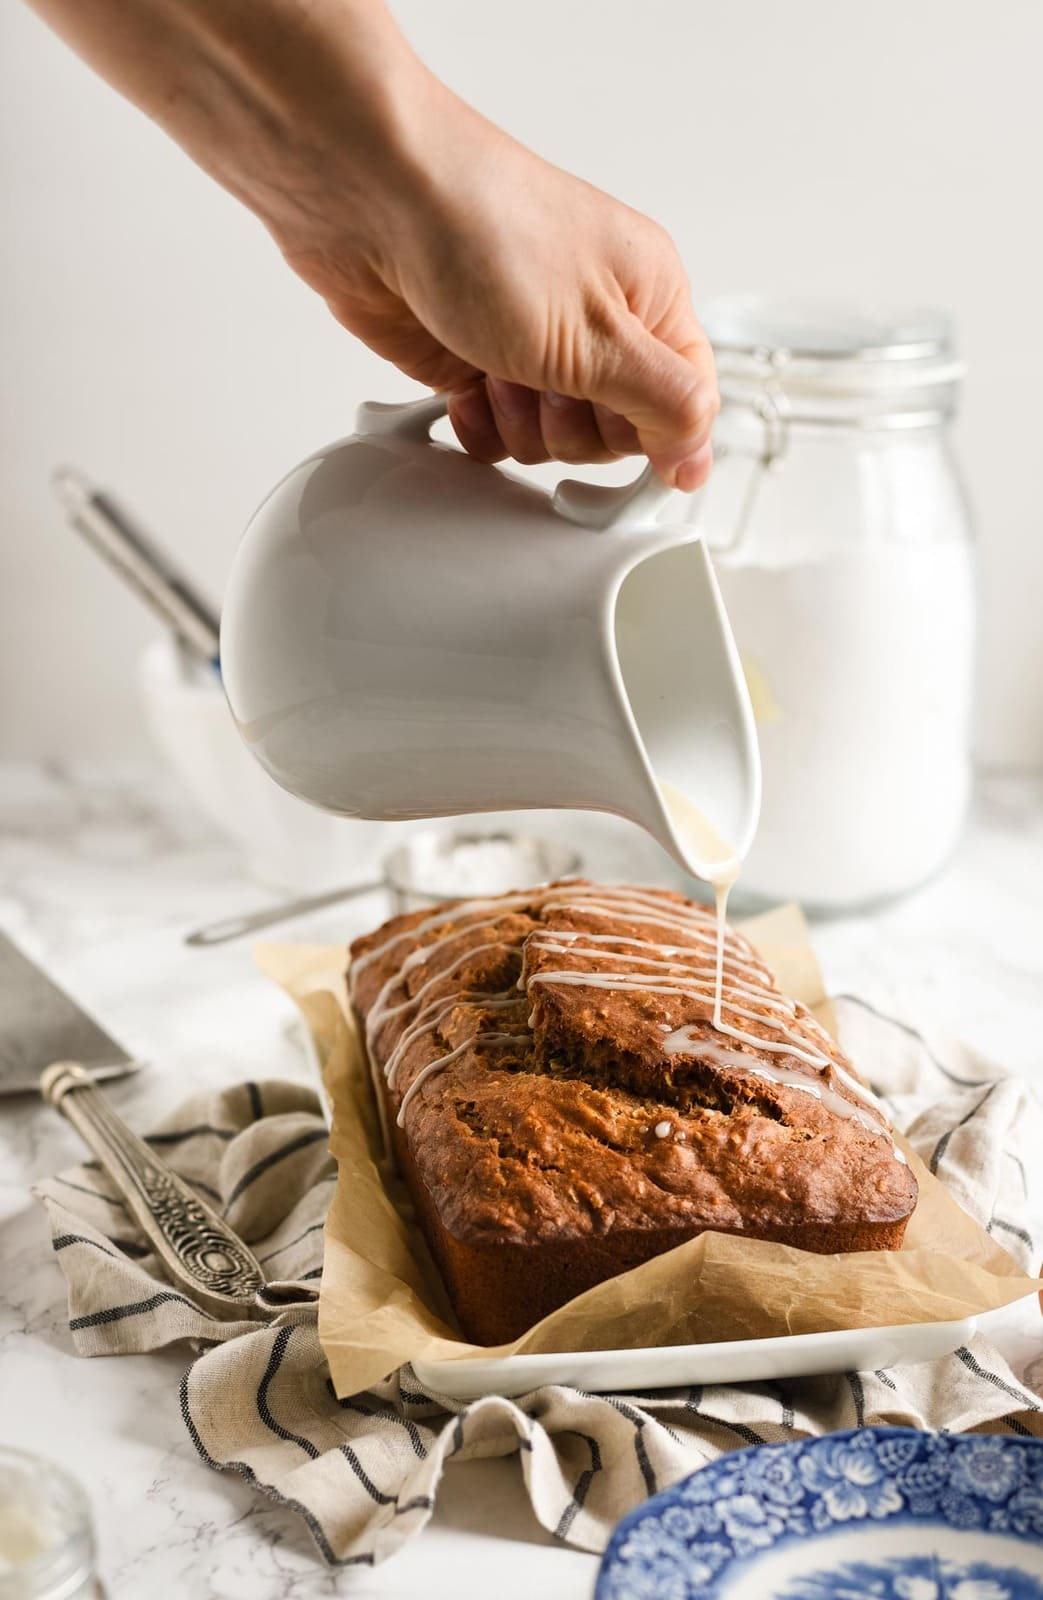 banana bread with glaze being poured on top